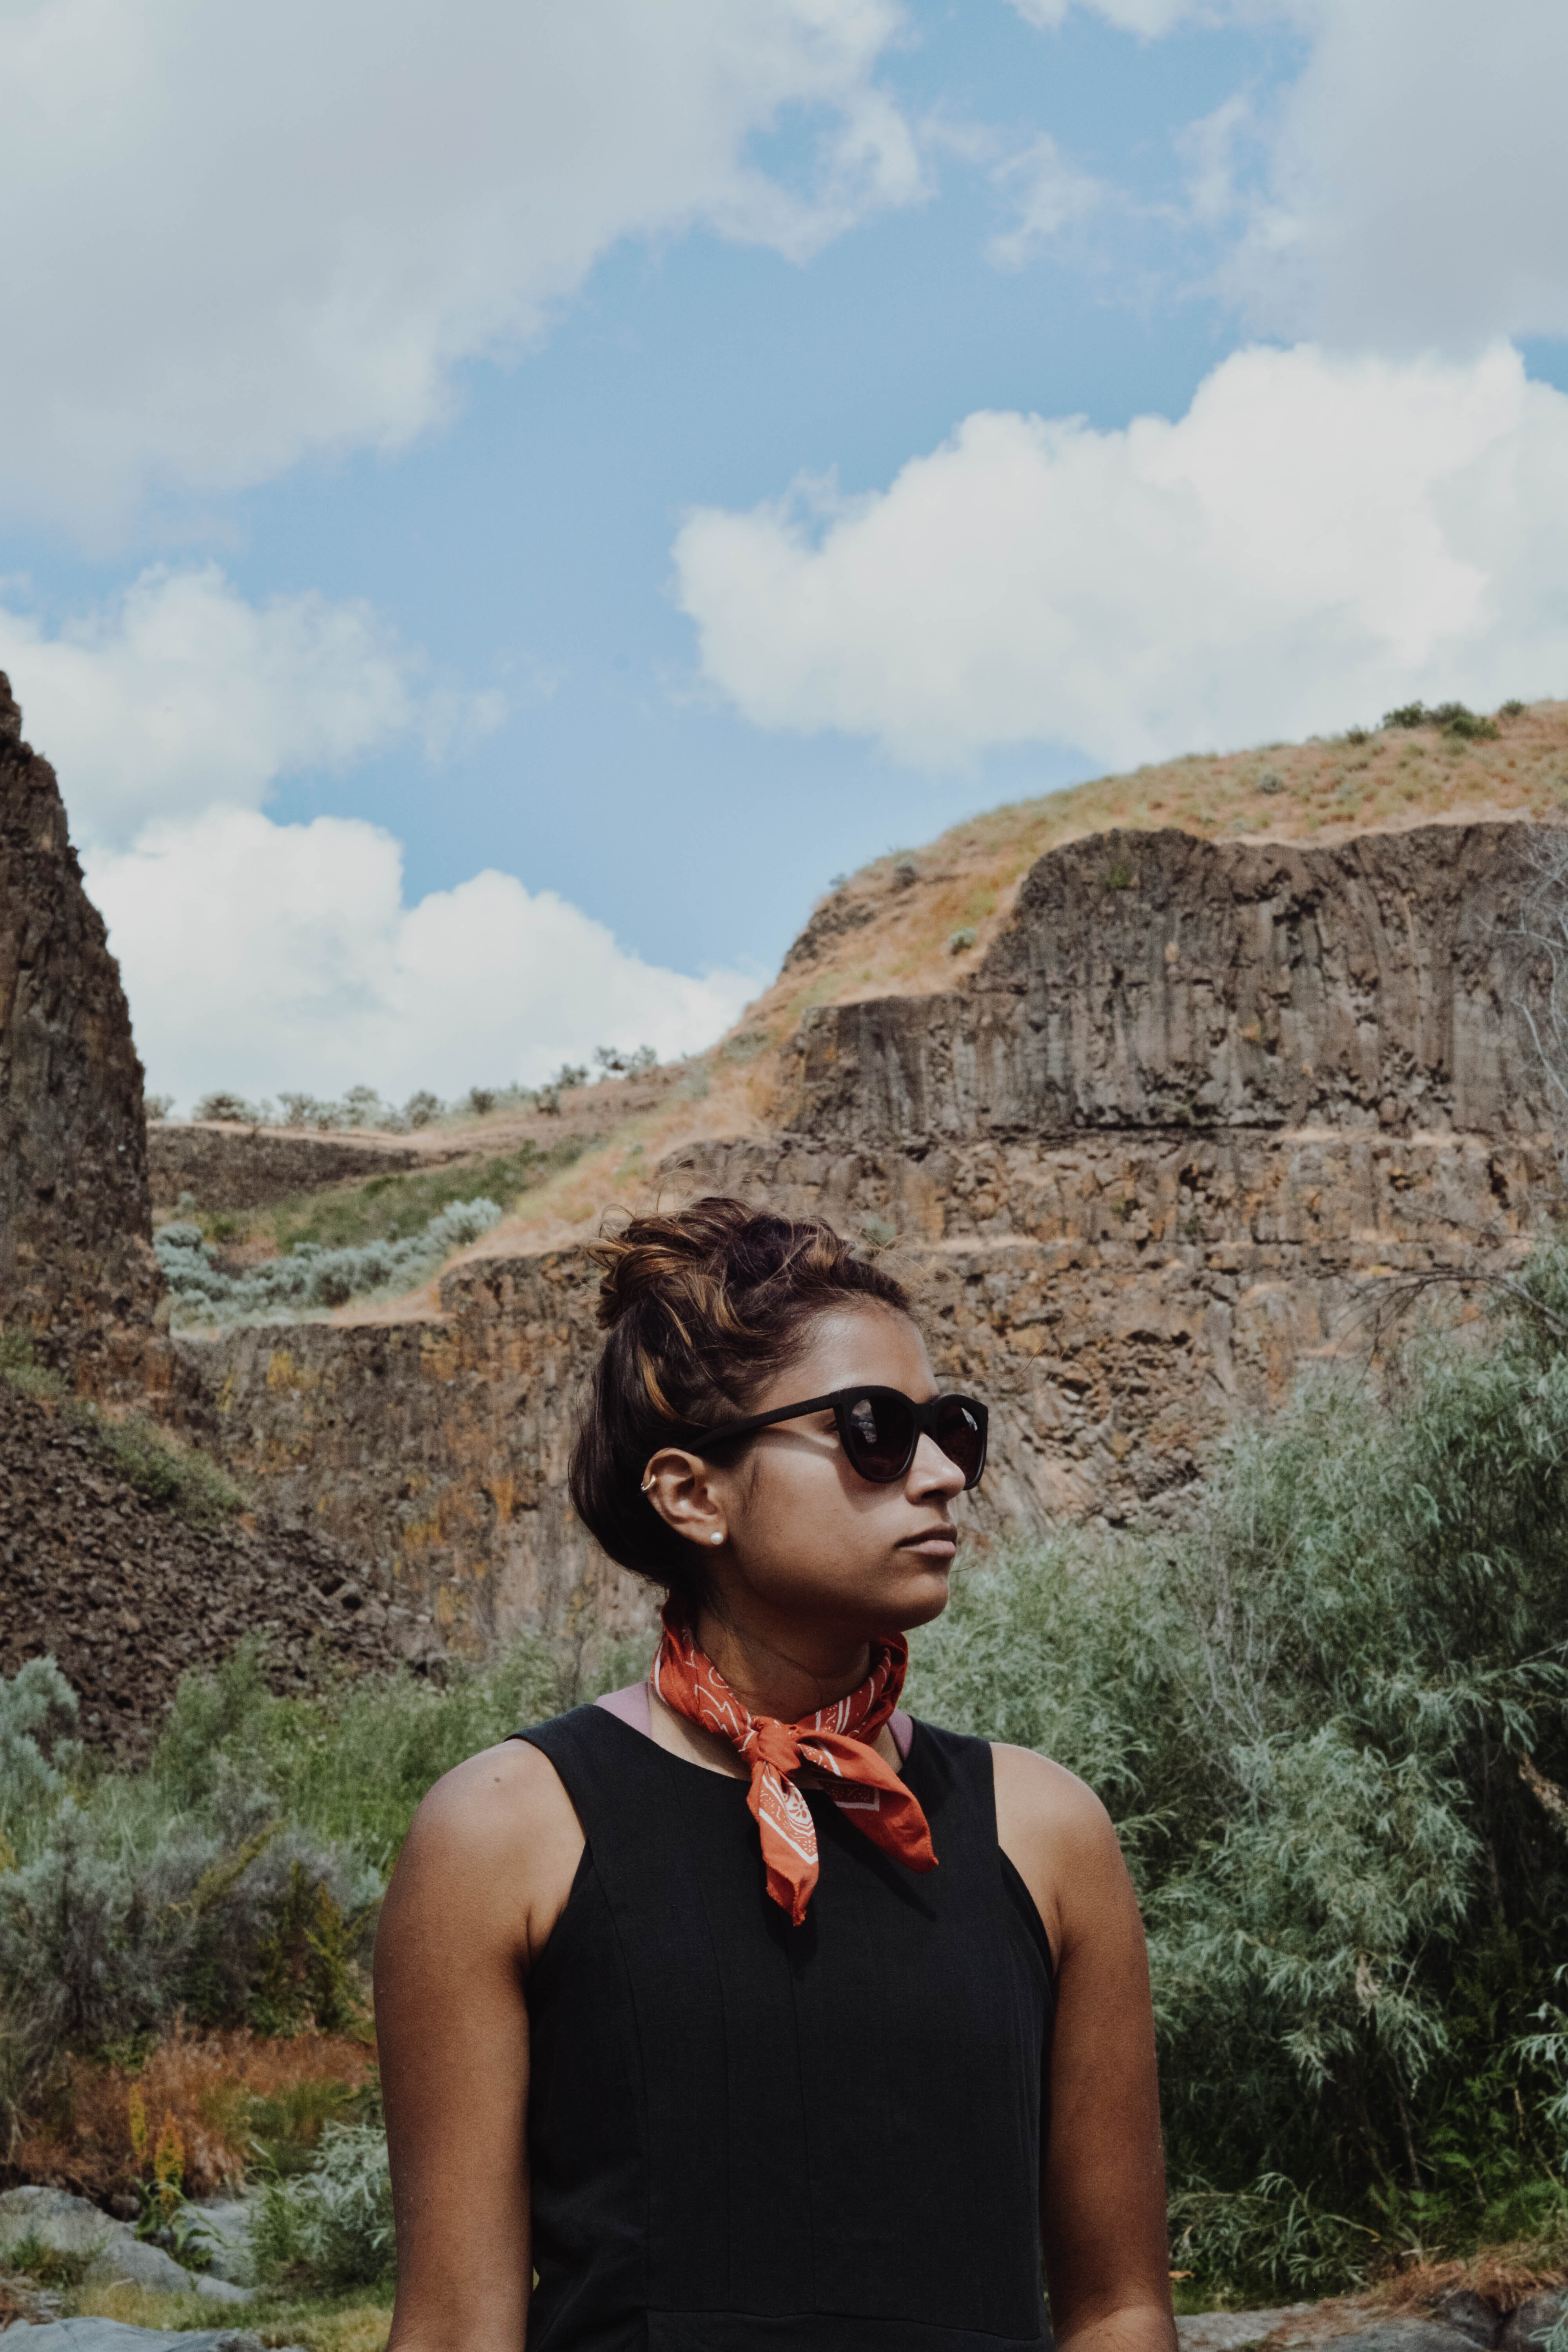 woman wearing black tank top stands beside brown cliff under blue sky during daytime